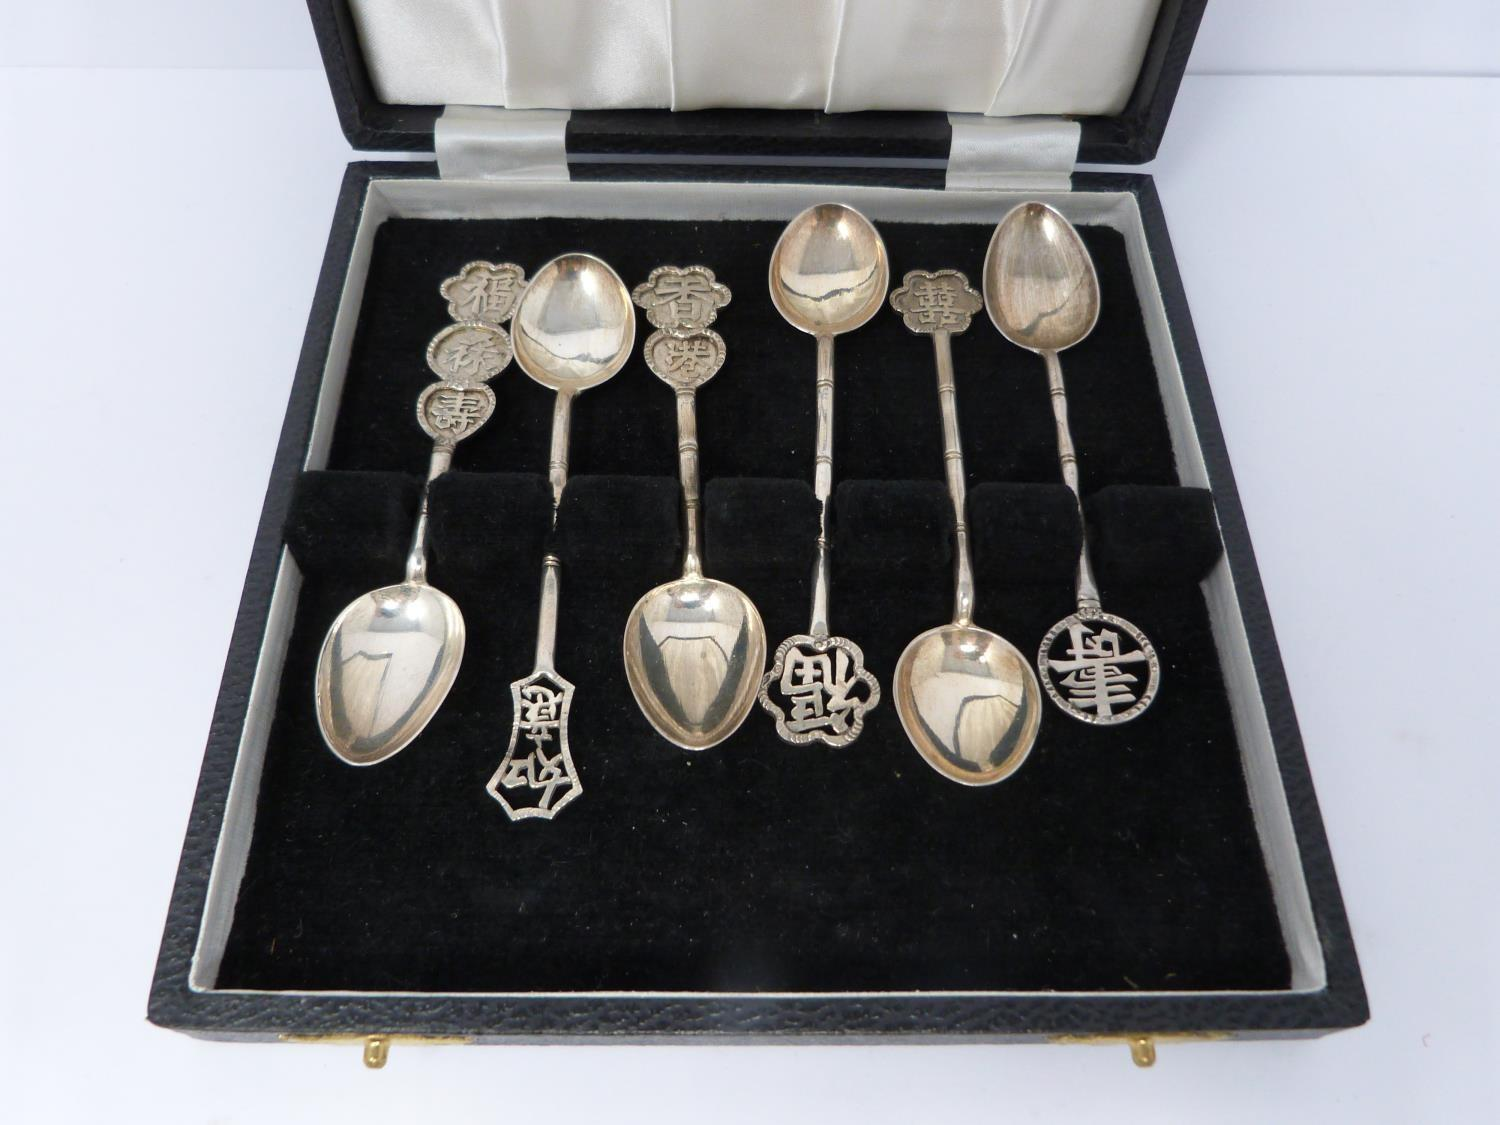 Hong silver spoons in box, cased silver christening set and cased silver cruet set, spoons having - Image 8 of 10